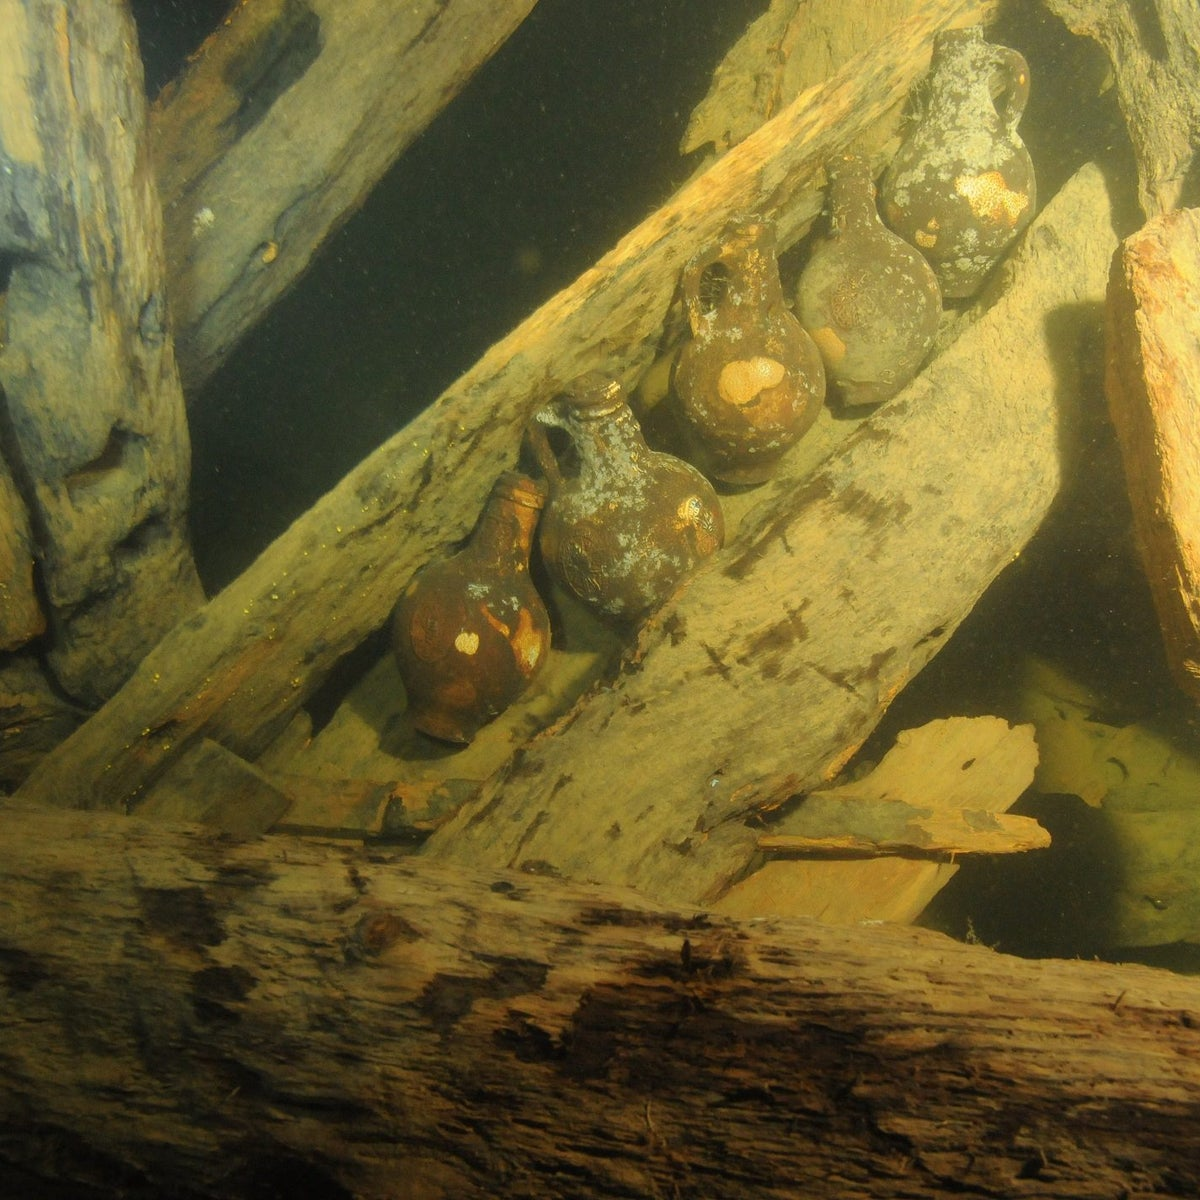 Some of the ships cargo, ceramic bottles, located in the stern.